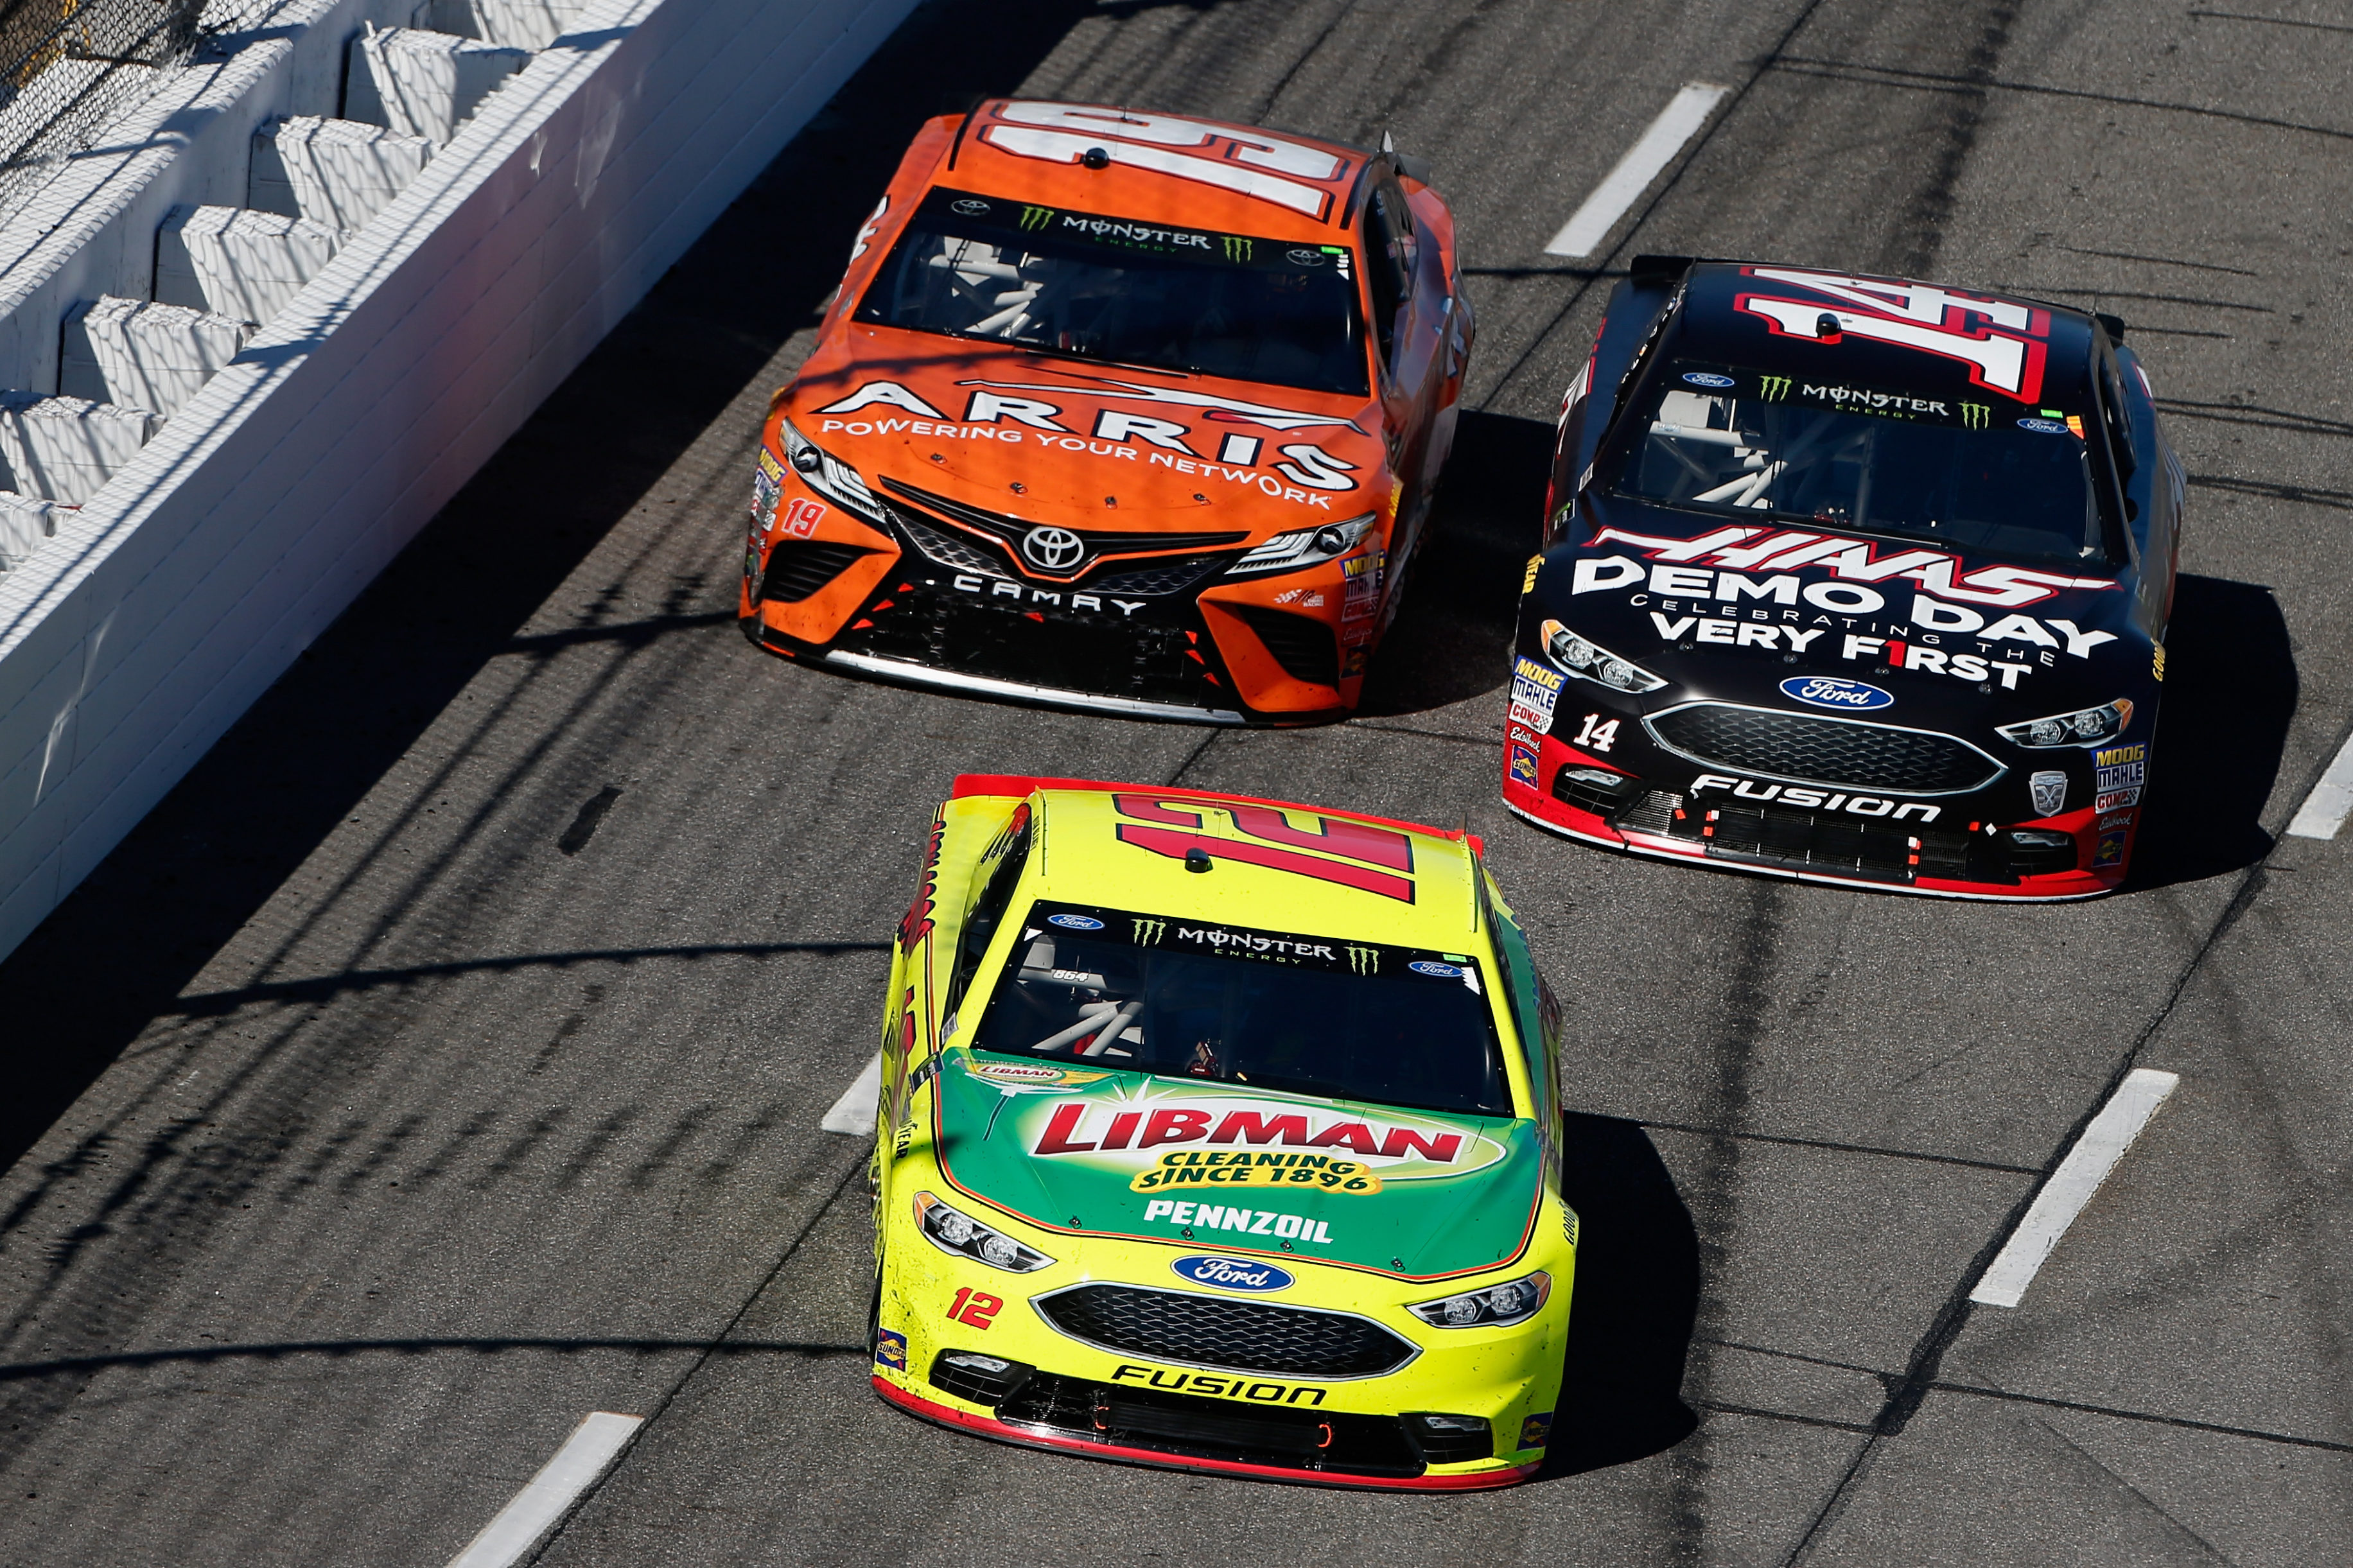 Ryan Blaney, Clint Bowyer and Daniel Suarez at Martinsville Speedway